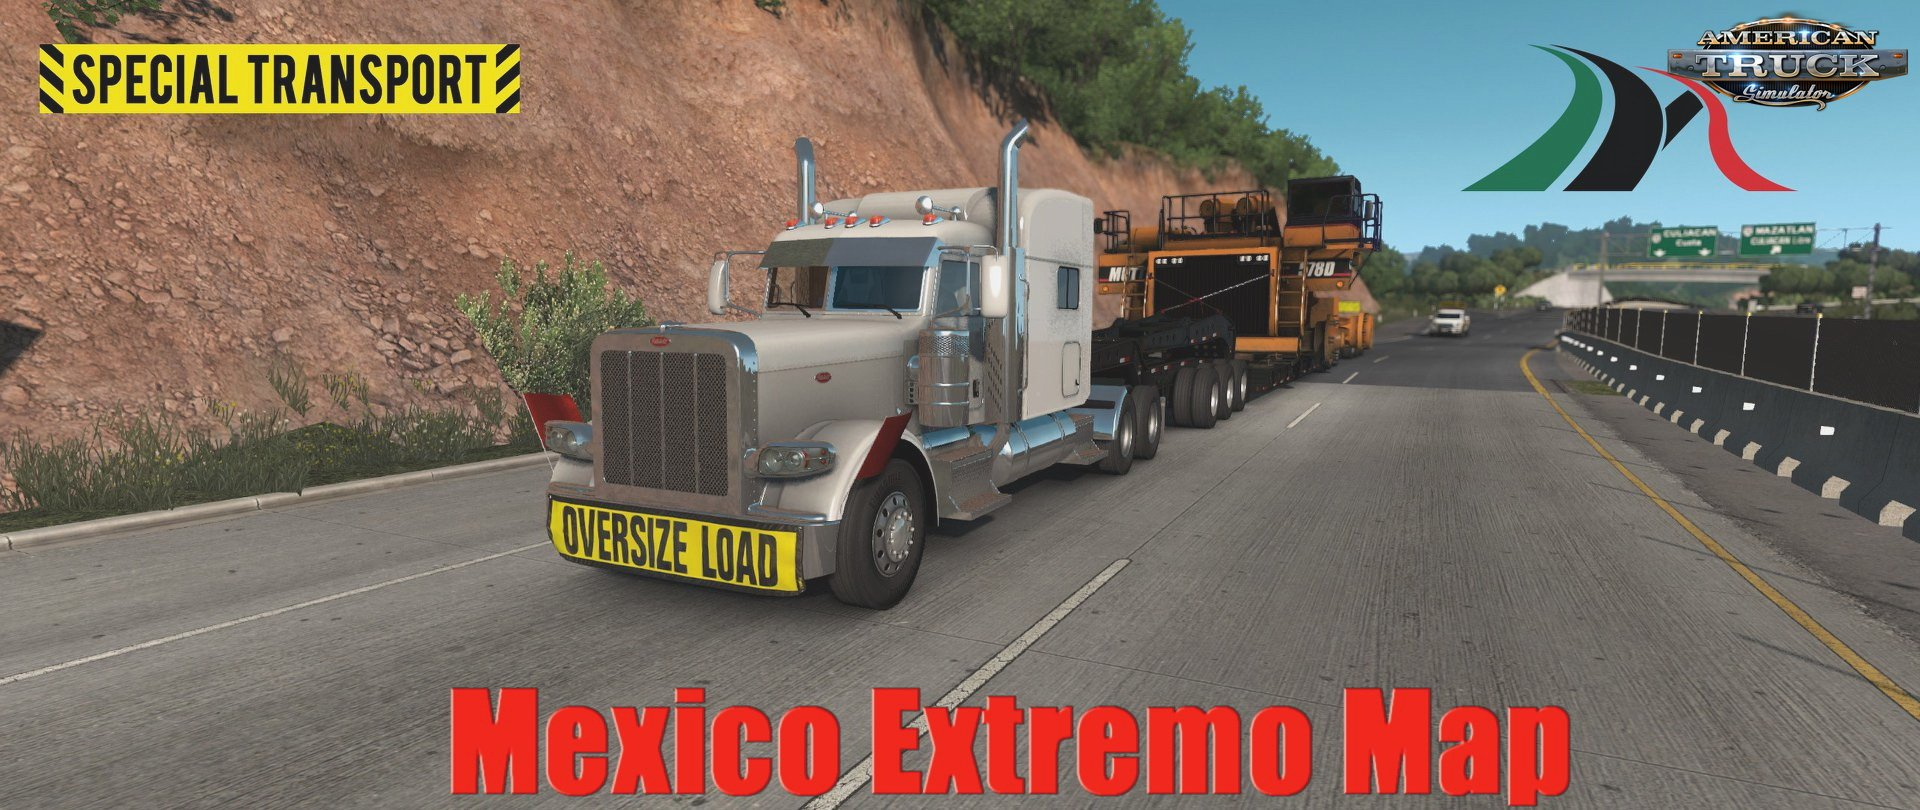 Mexico Extremo Map v2.0.5 (Update) for ATS (1.32.x)